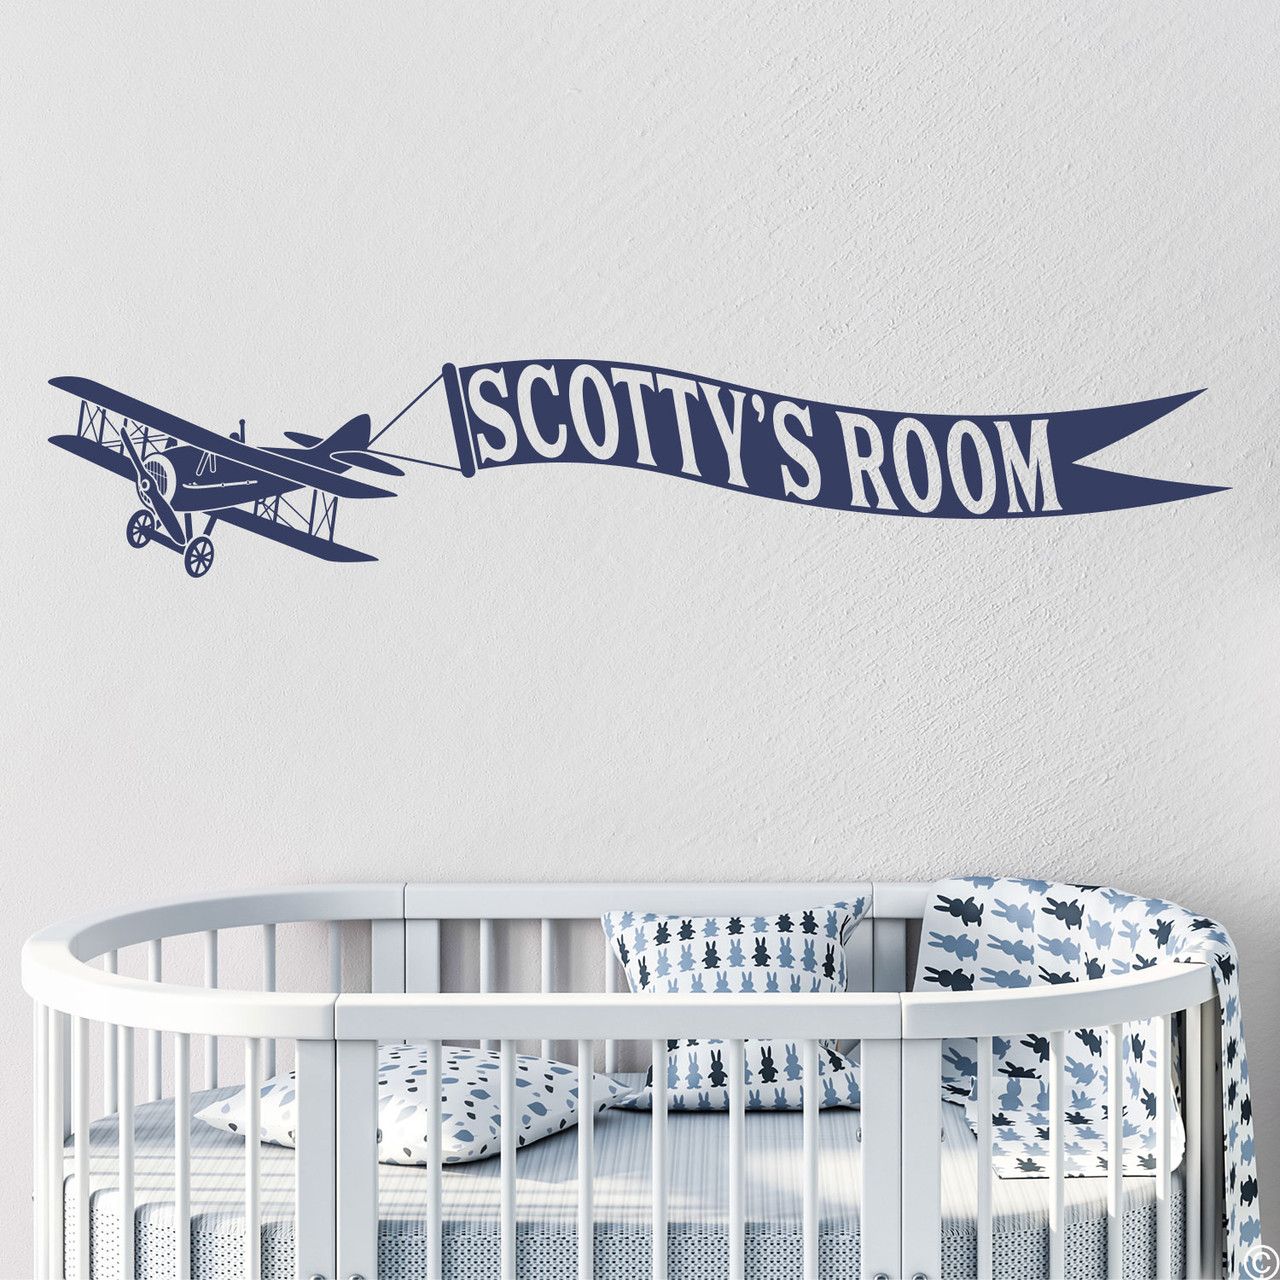 Biplane wall decal with customizable name banner on a nursery room wall in dark blue vinyl.